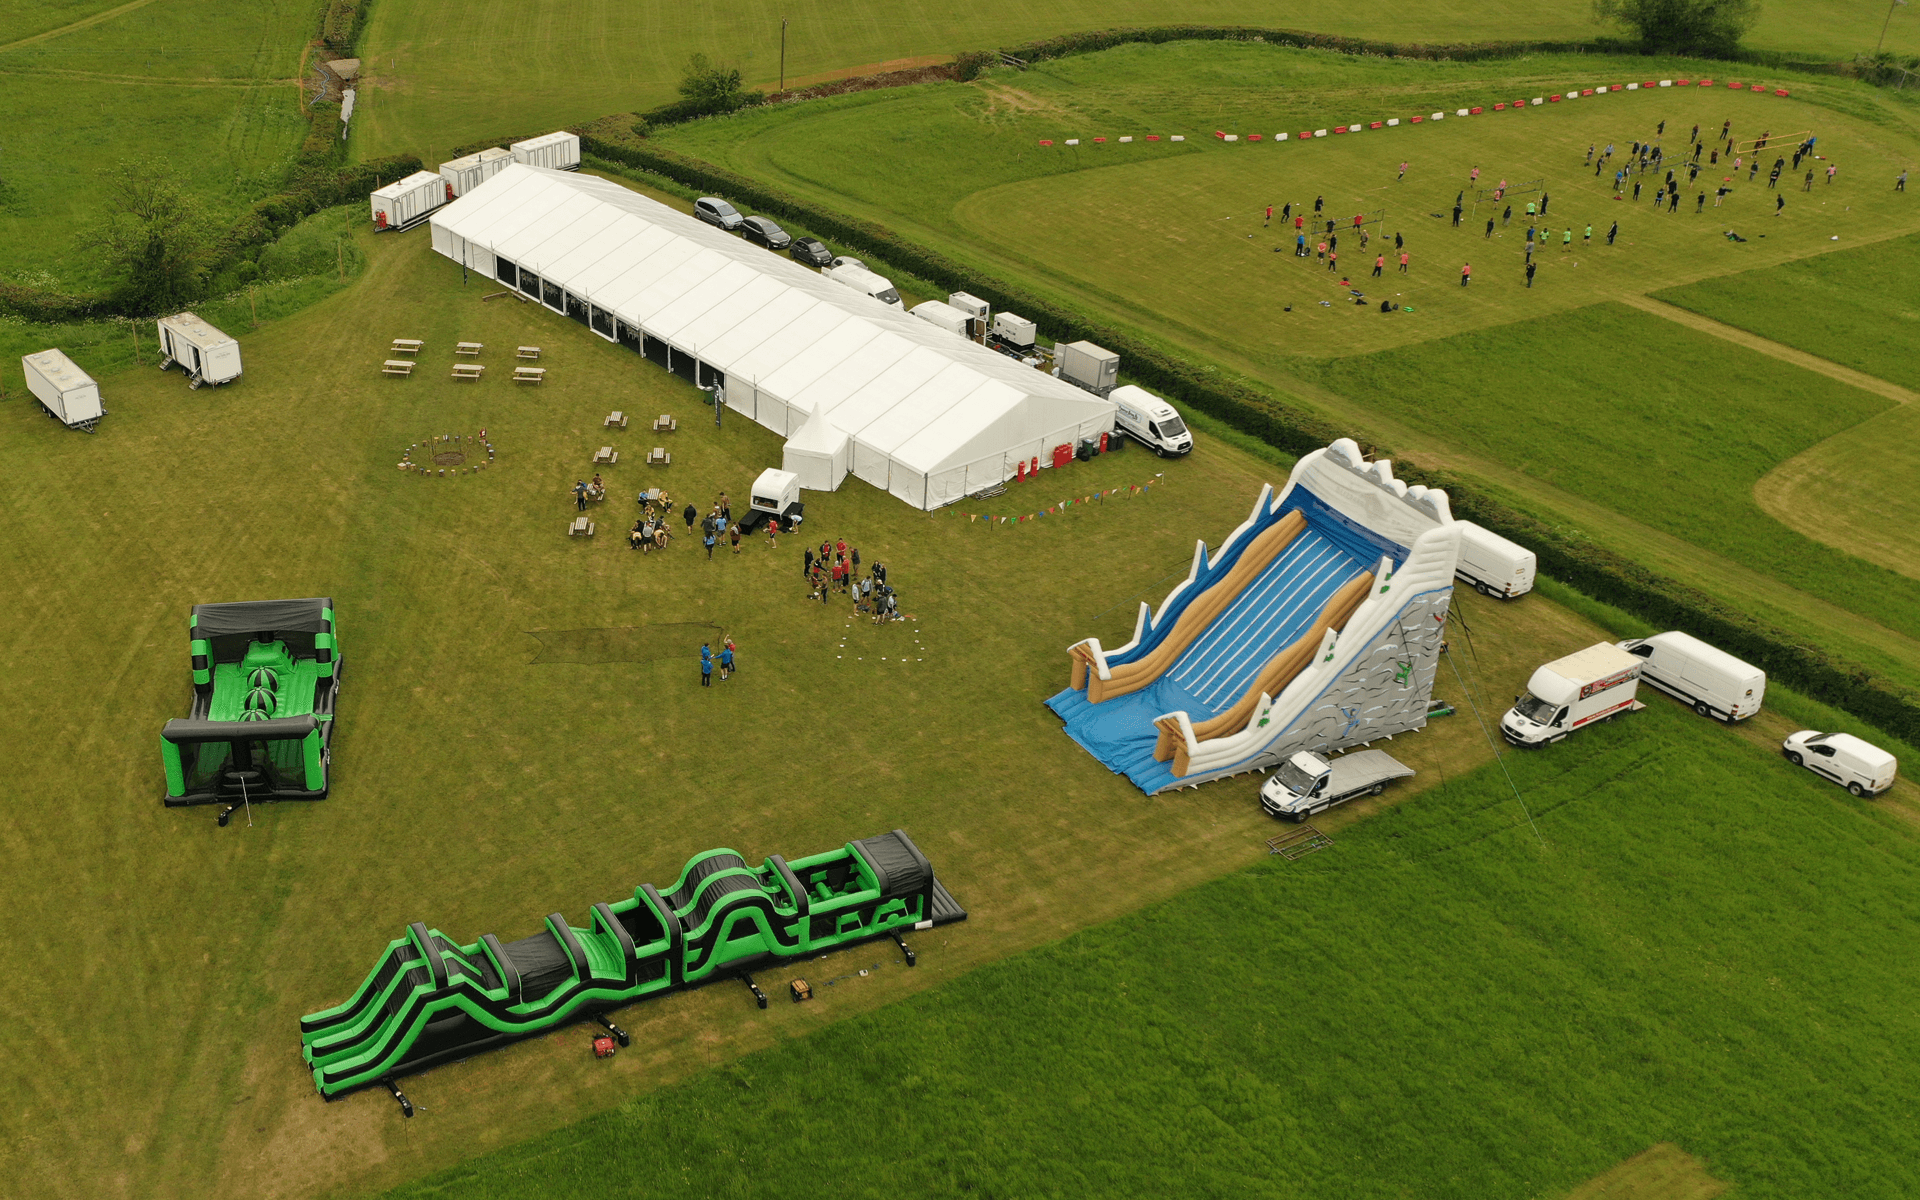 """Mavic 2 Pro"" aerial drone photo of inflatable obstacle course in field at ""Hydrock"" corporate event in almondsbury bristol"